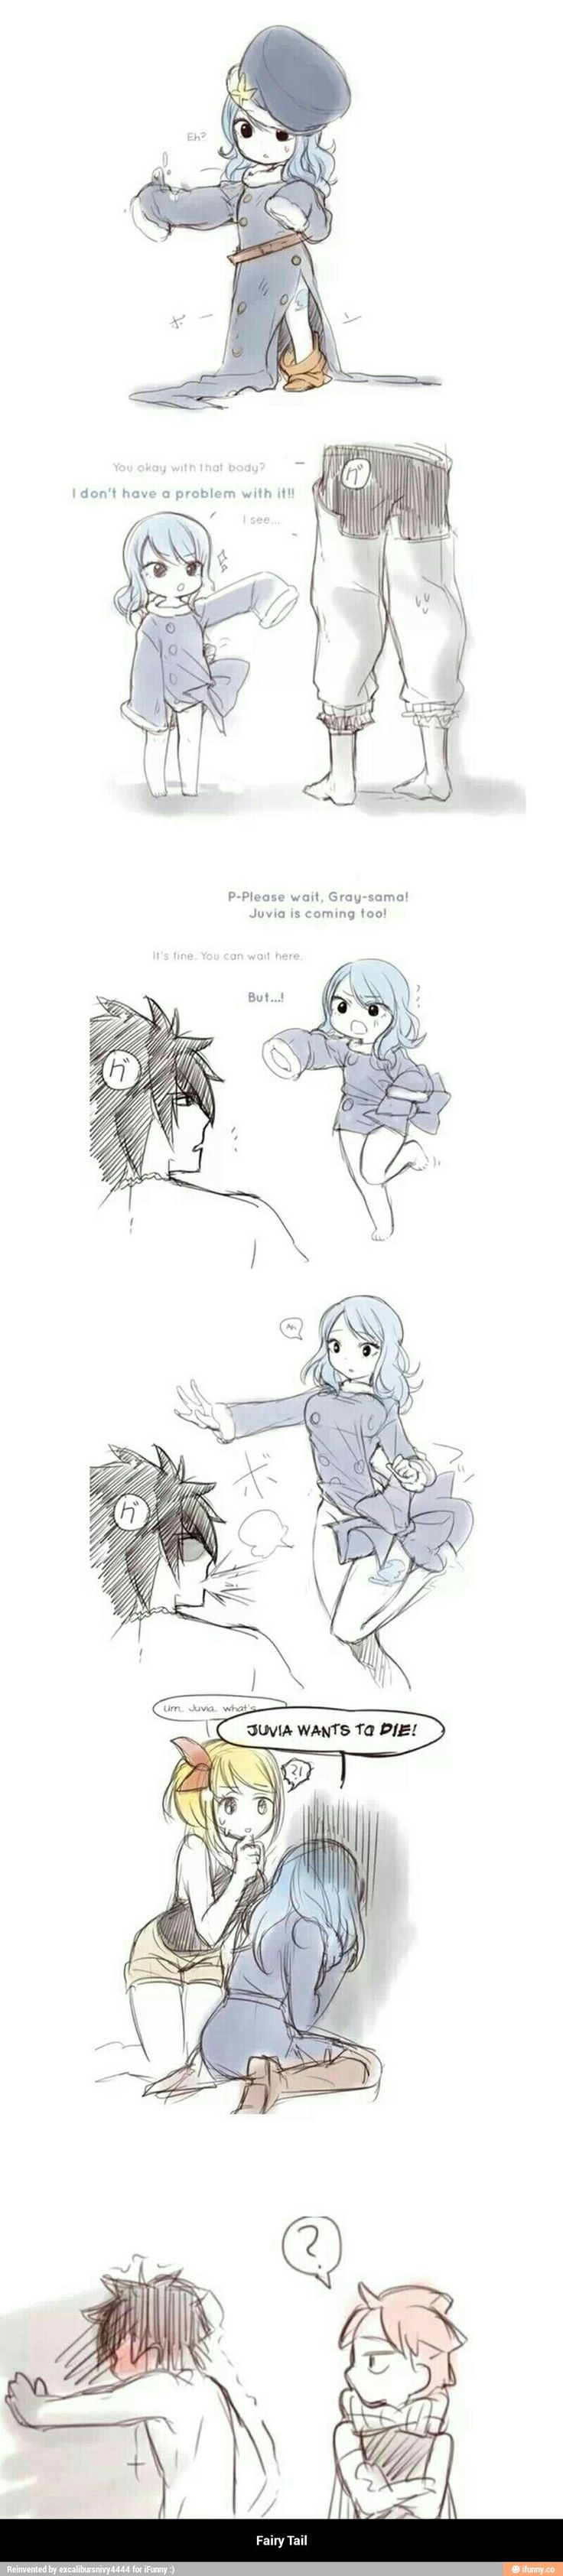 Although its kinda perverted its still cute and halerious JUST LOOK AT GRAYS FACE XD